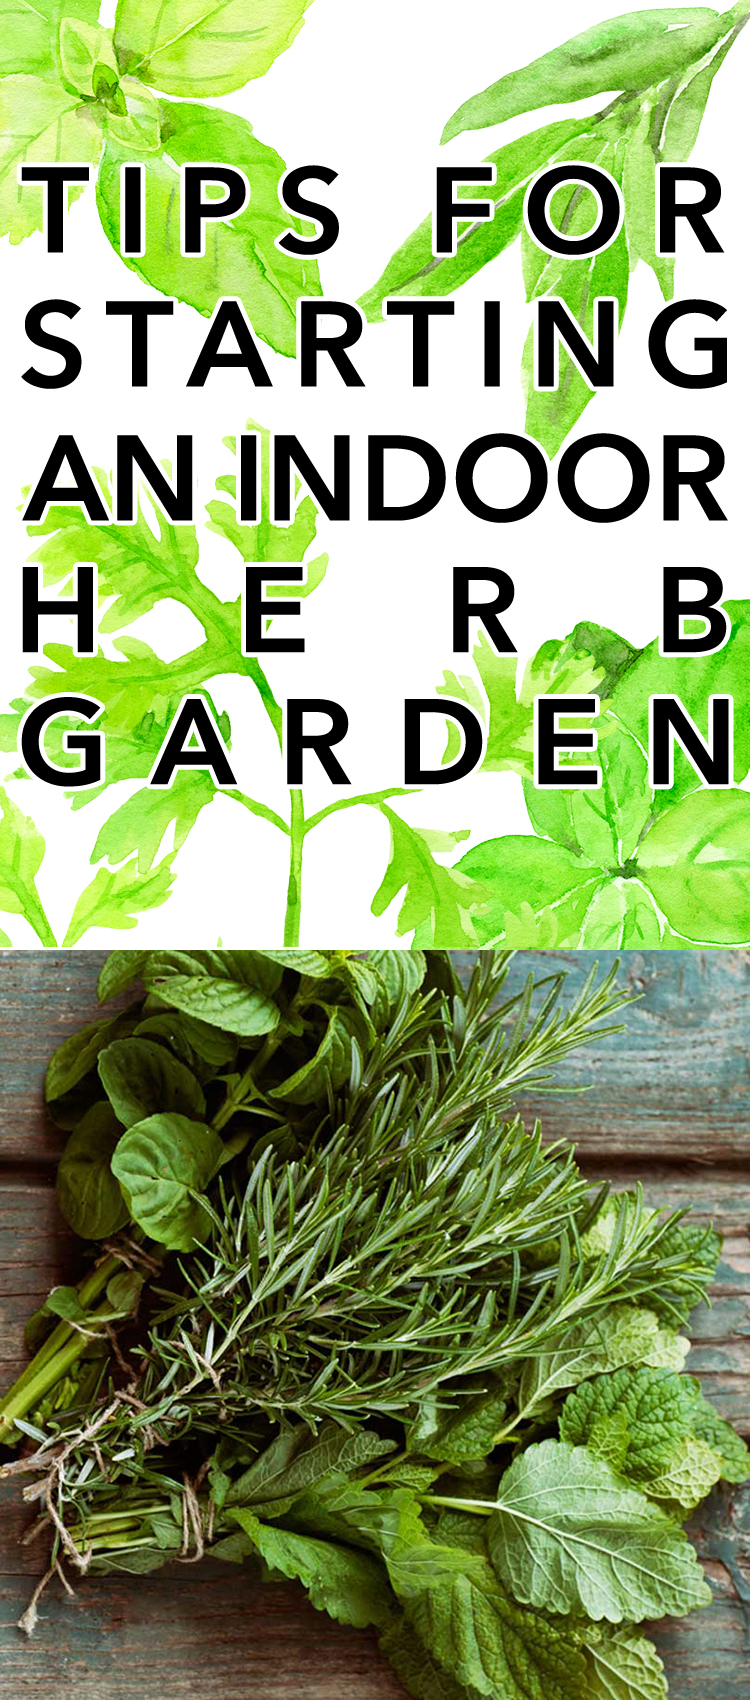 Tips For Starting An Indoor Herb Garden The Cottage Market